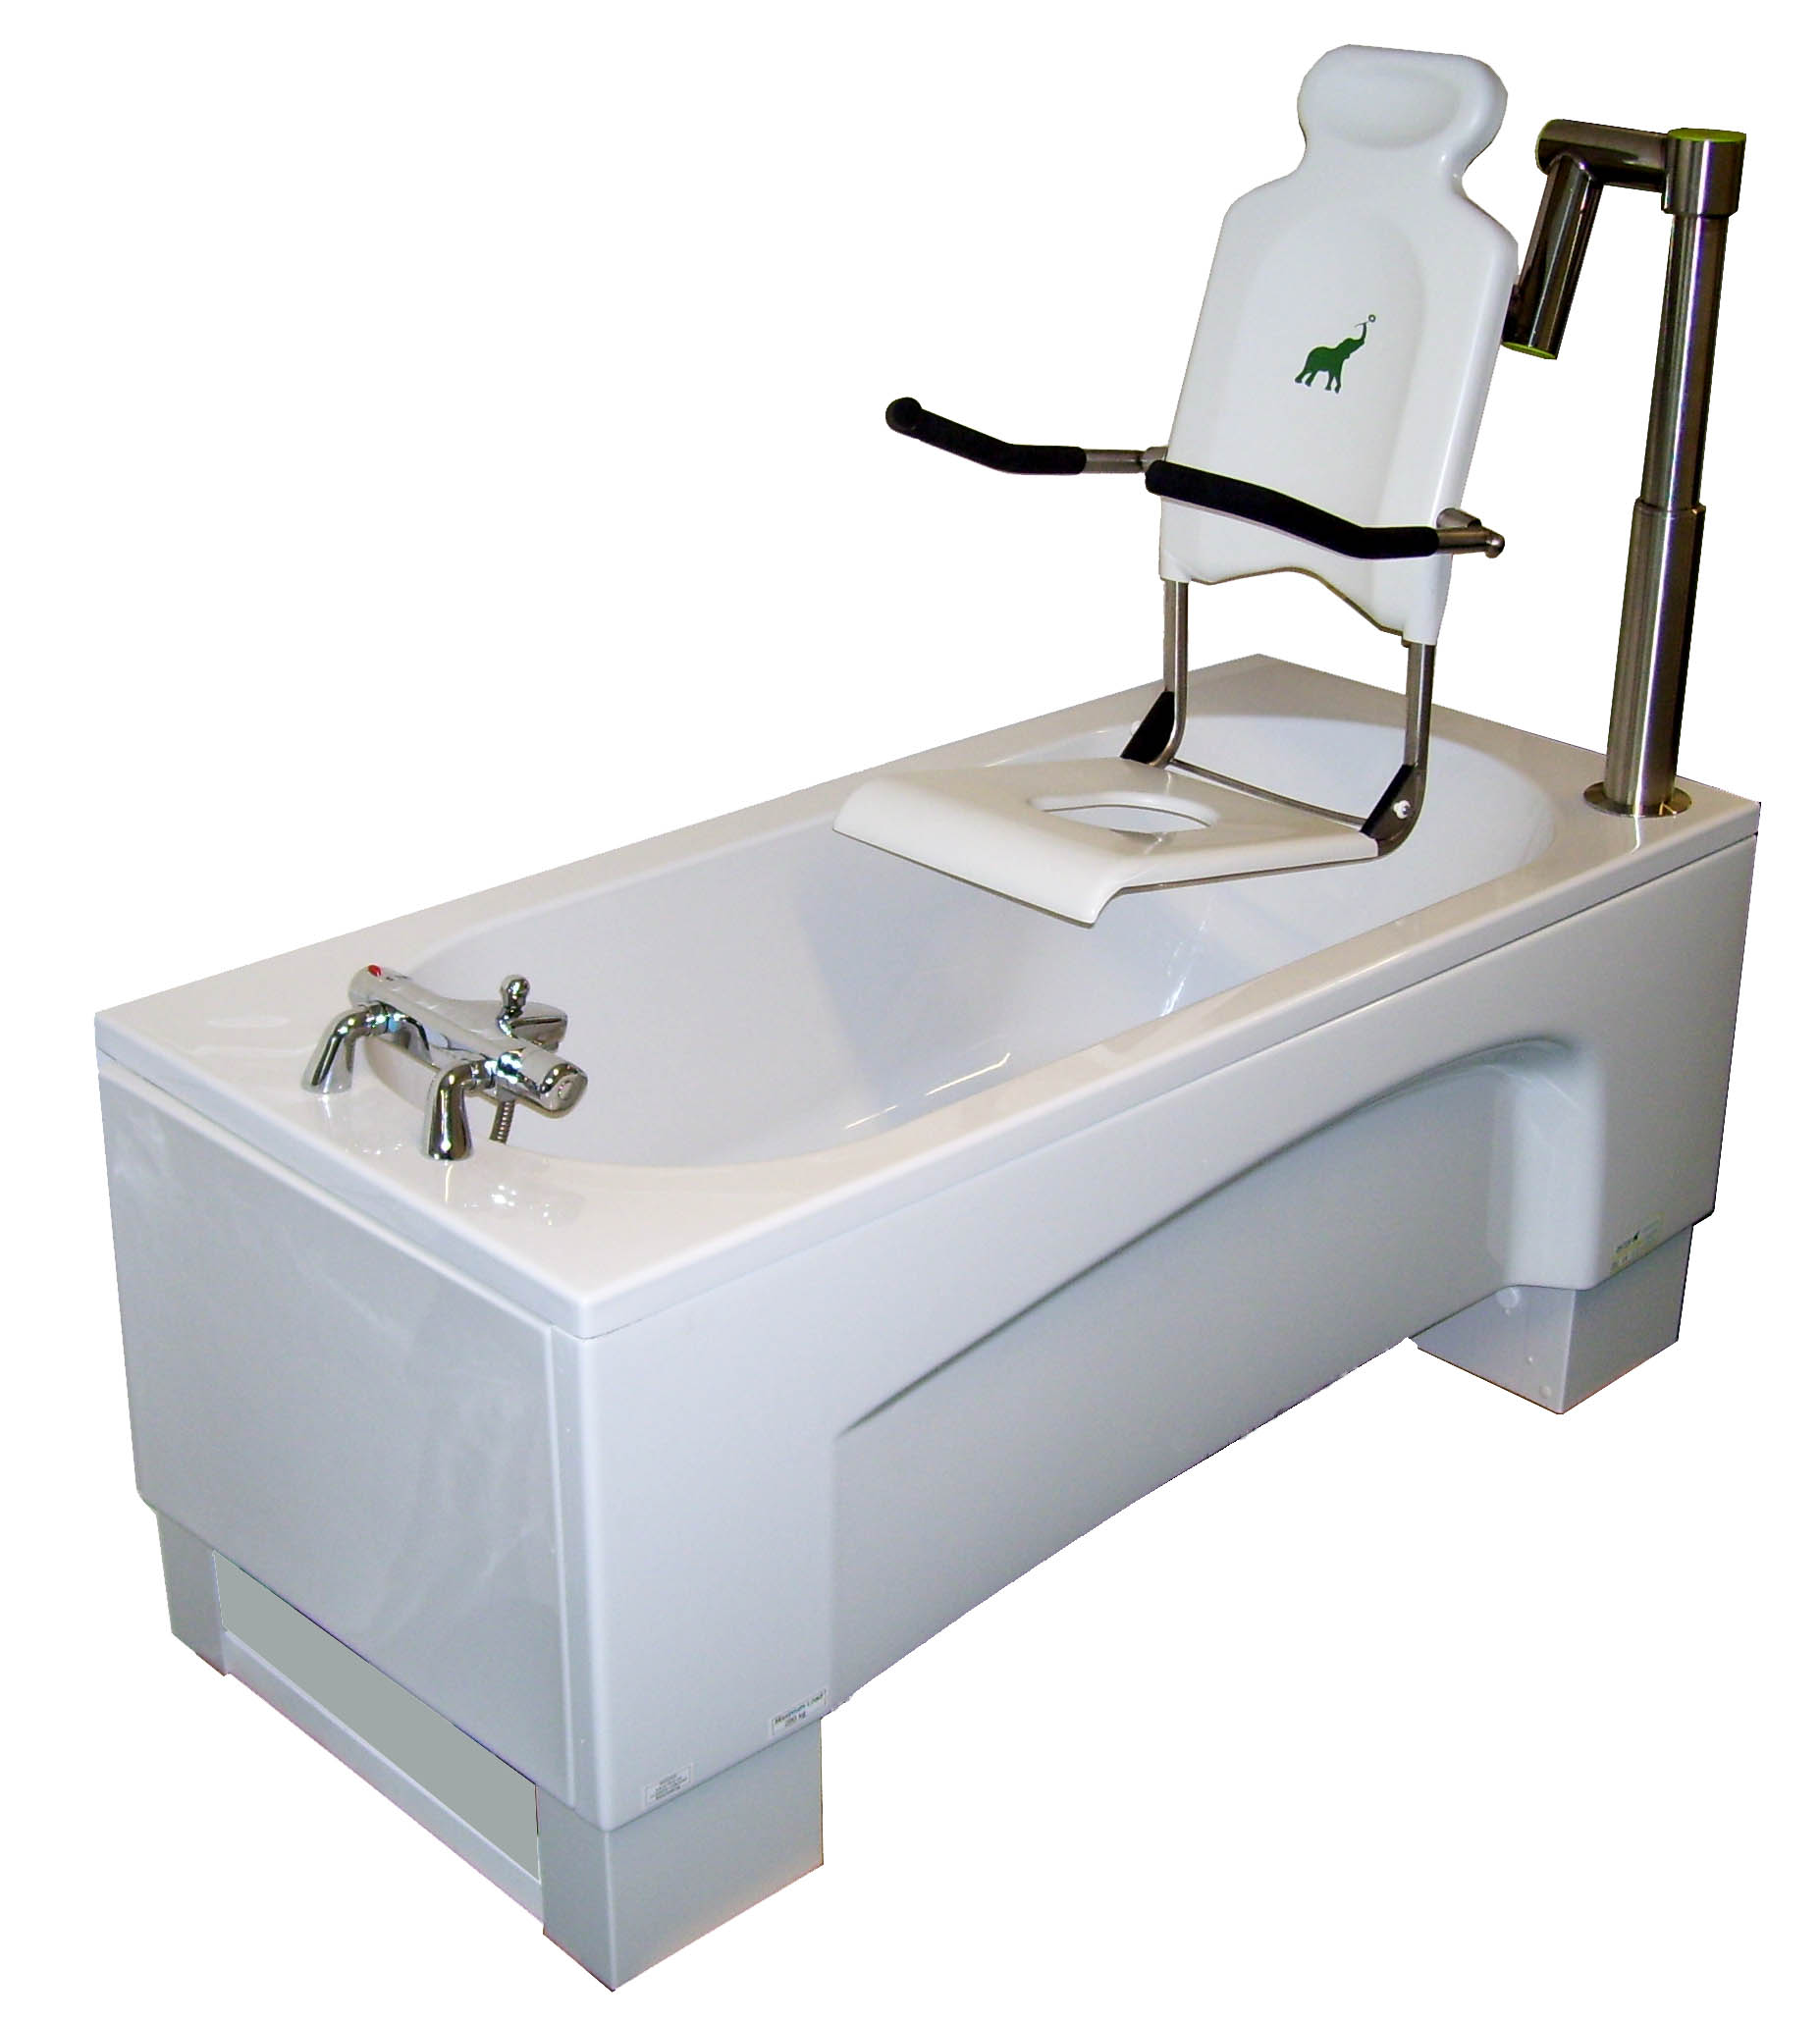 Handicap Bath Chair Syncra Standard Modular Bathing System Living Made Easy